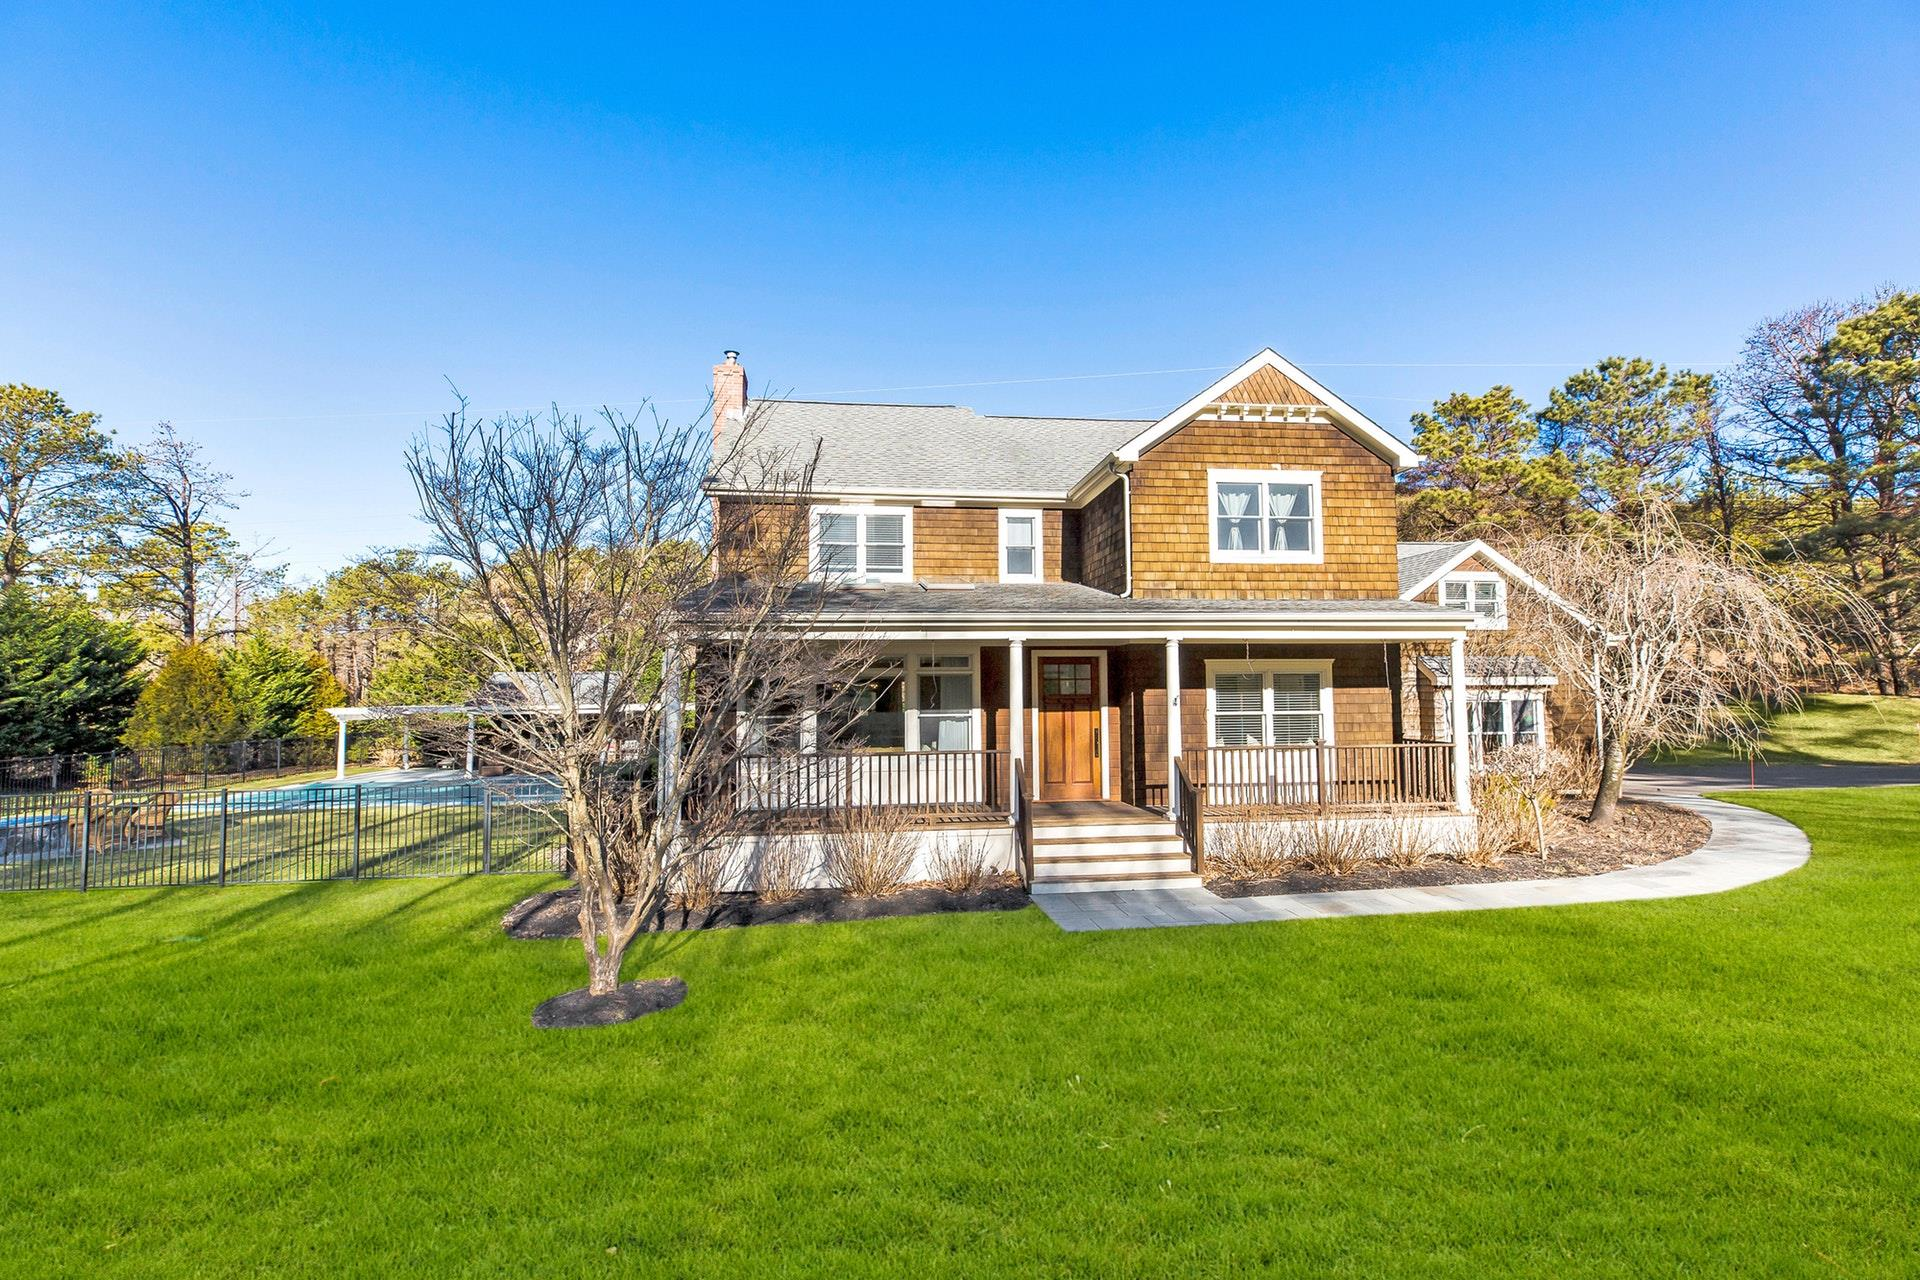 16 Starboard Rd - Hampton Bays, New York